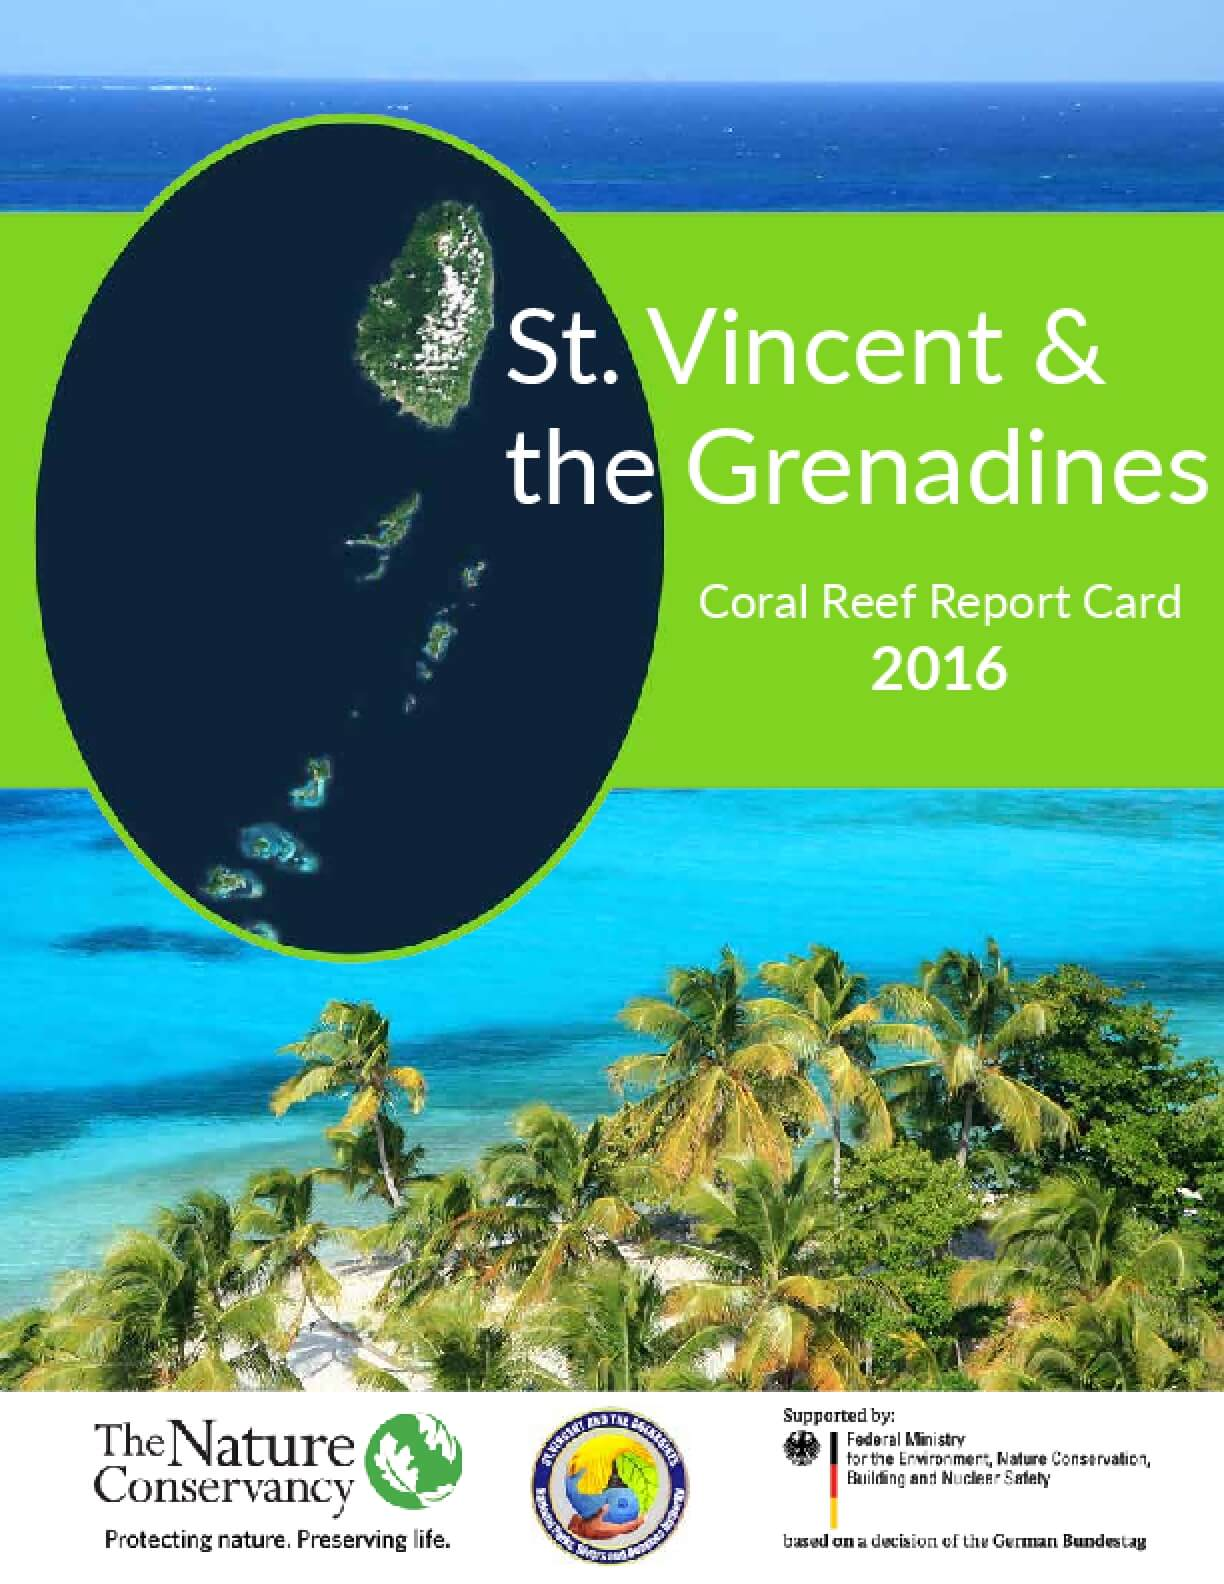 St. Vincent & the Grenadines: Coral Reef Report Card 2016